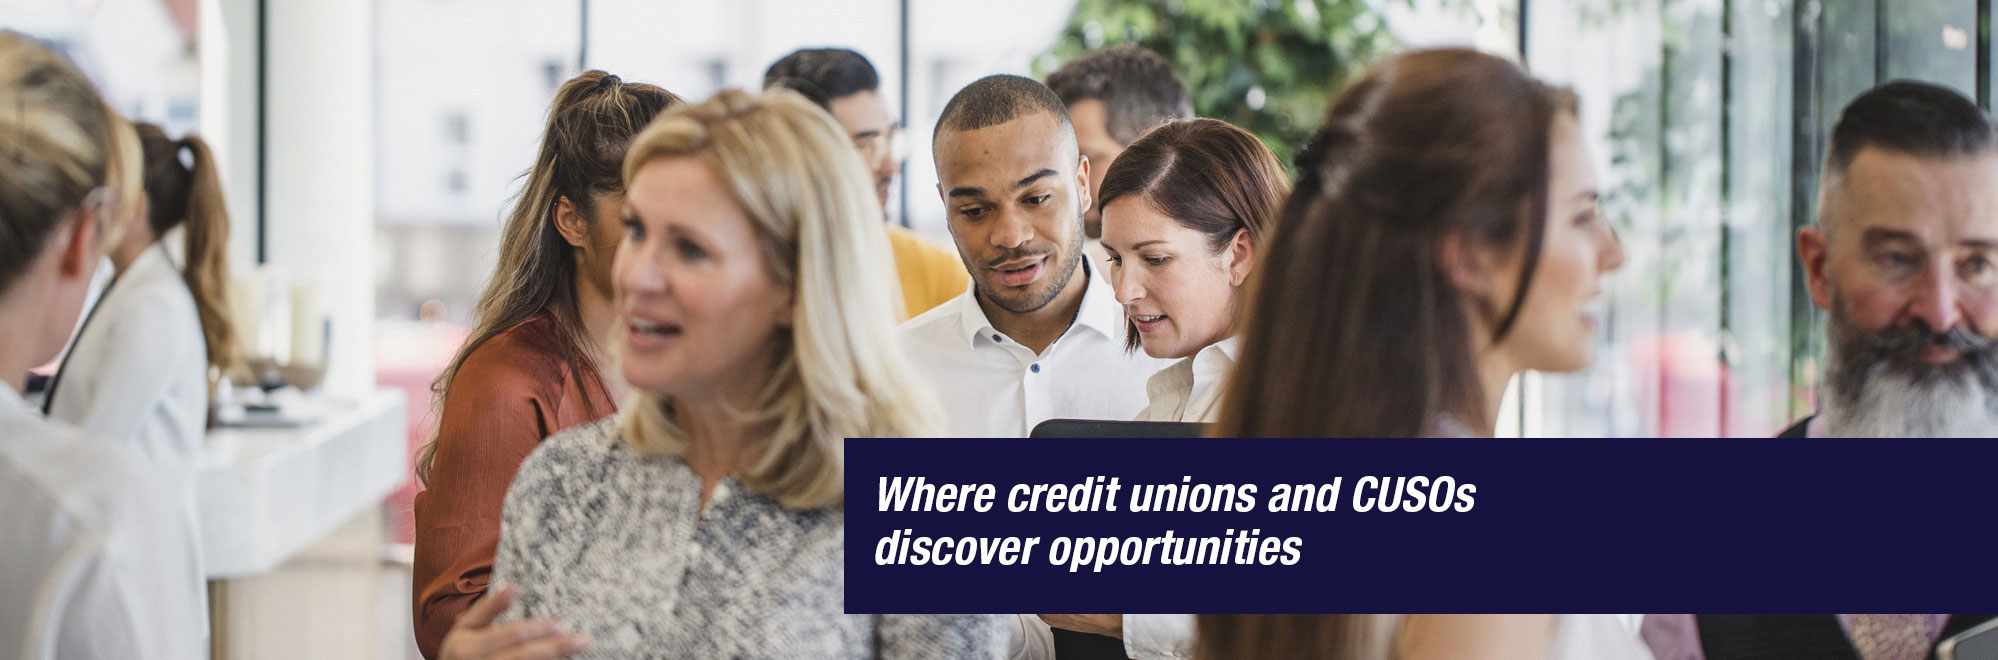 Where credit unions and CUSOs discover opportunities